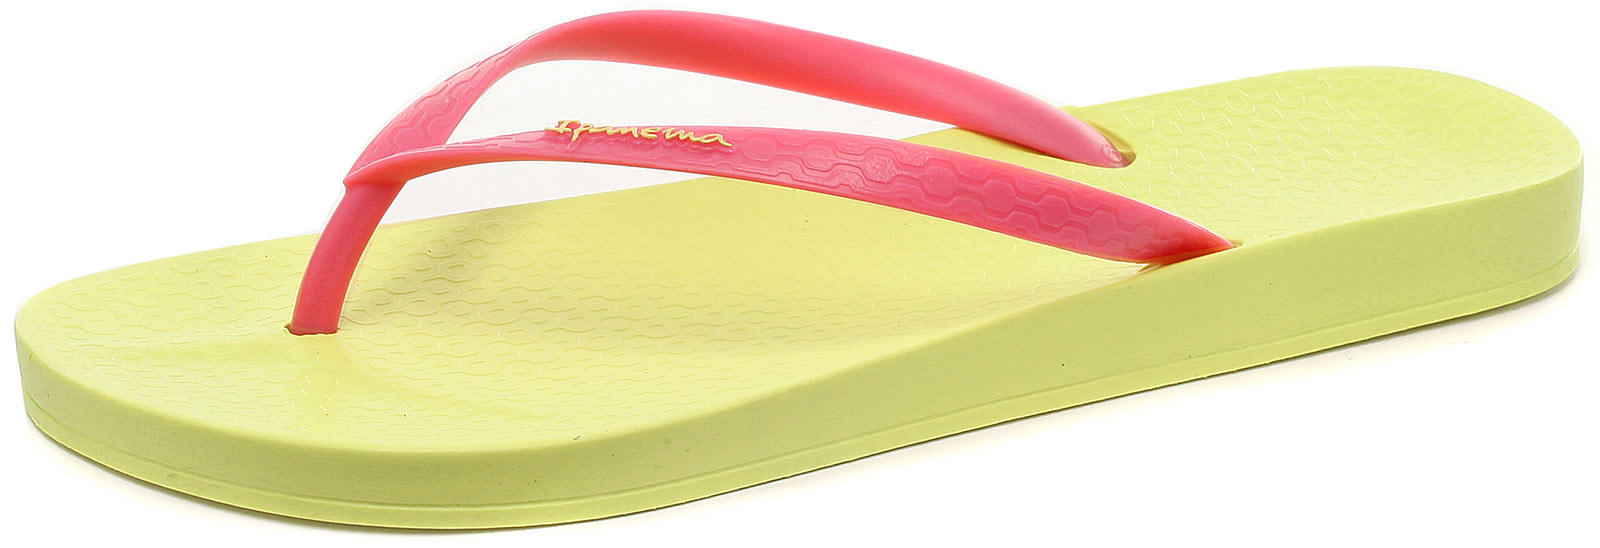 Ipanema Beach Brasil Tropical Lemon/Pink Womens Beach Ipanema Flip Flops Size () eaa8de